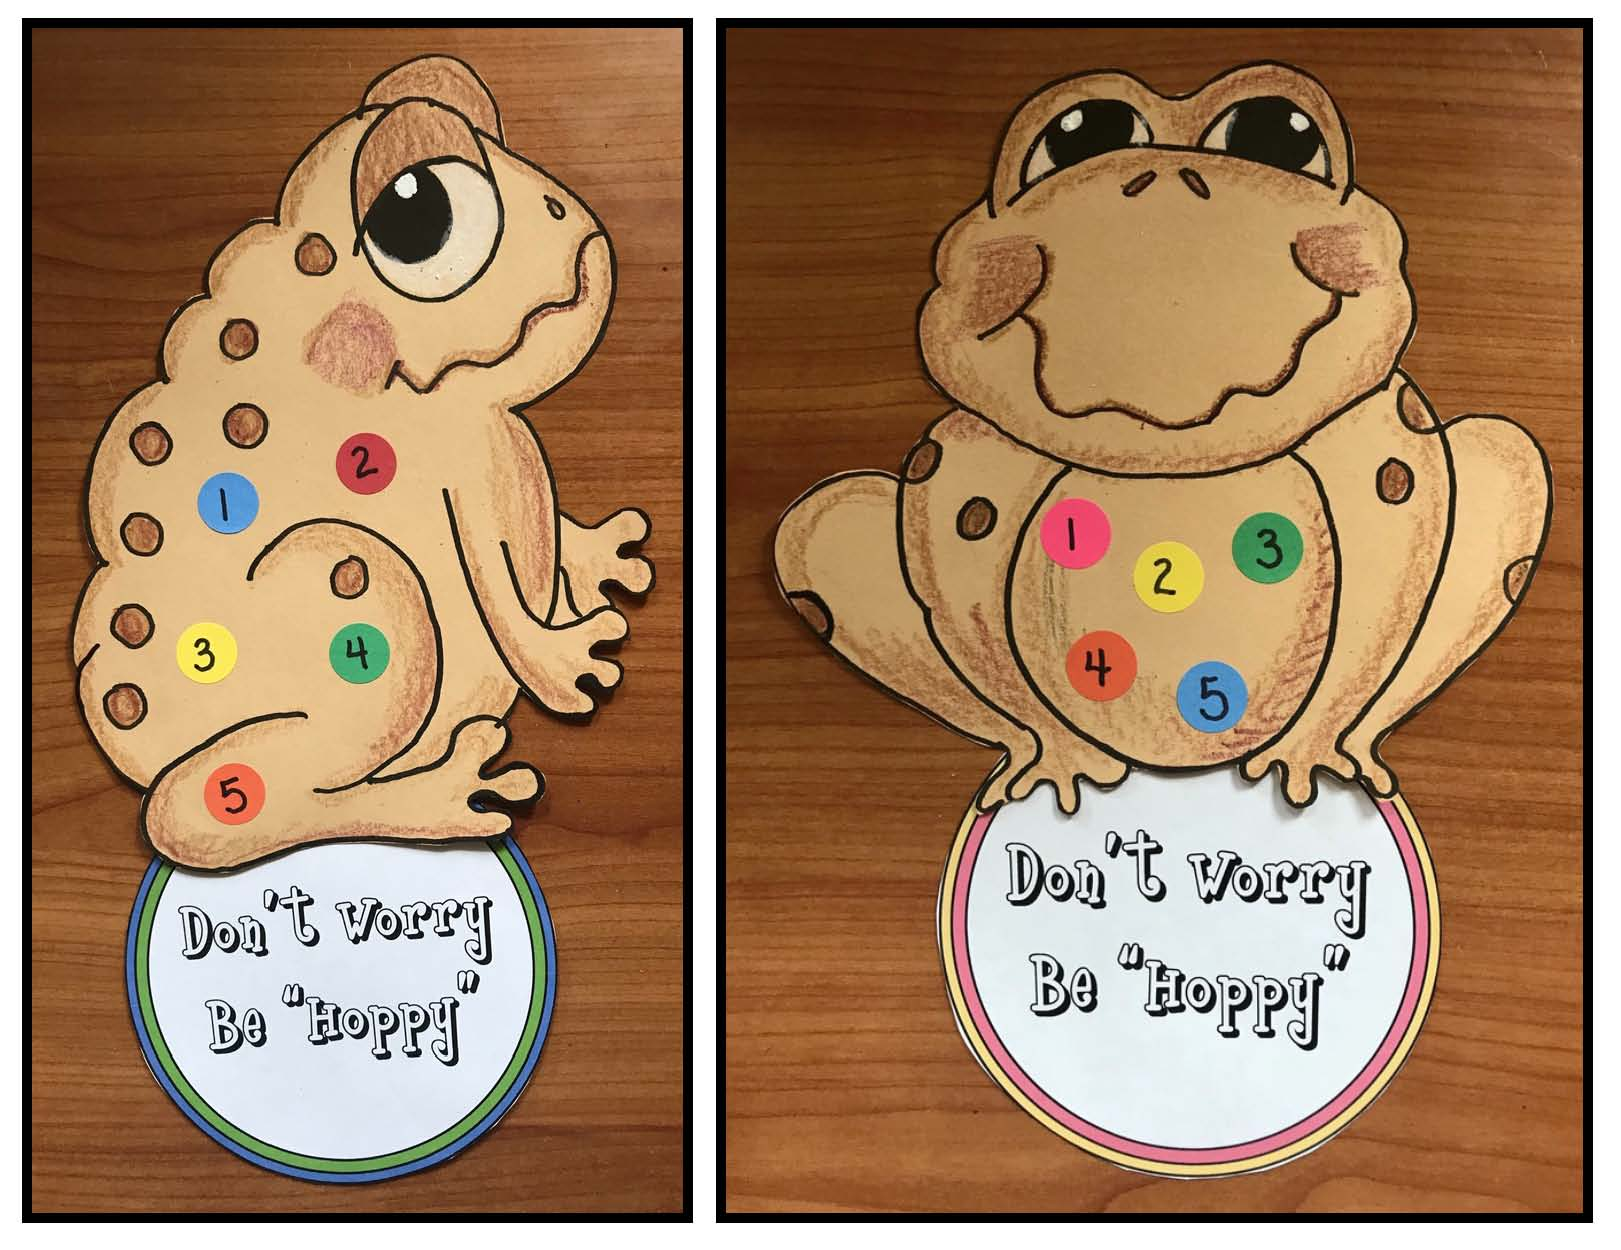 wemberly worried activities, back to school stories, back to school bulletin boards, back to school crafts, back to school writing prompts, activities for Wemberly Worried, Kevin Henkes books, idioms, worry wart activities, toad crafts, toad posters